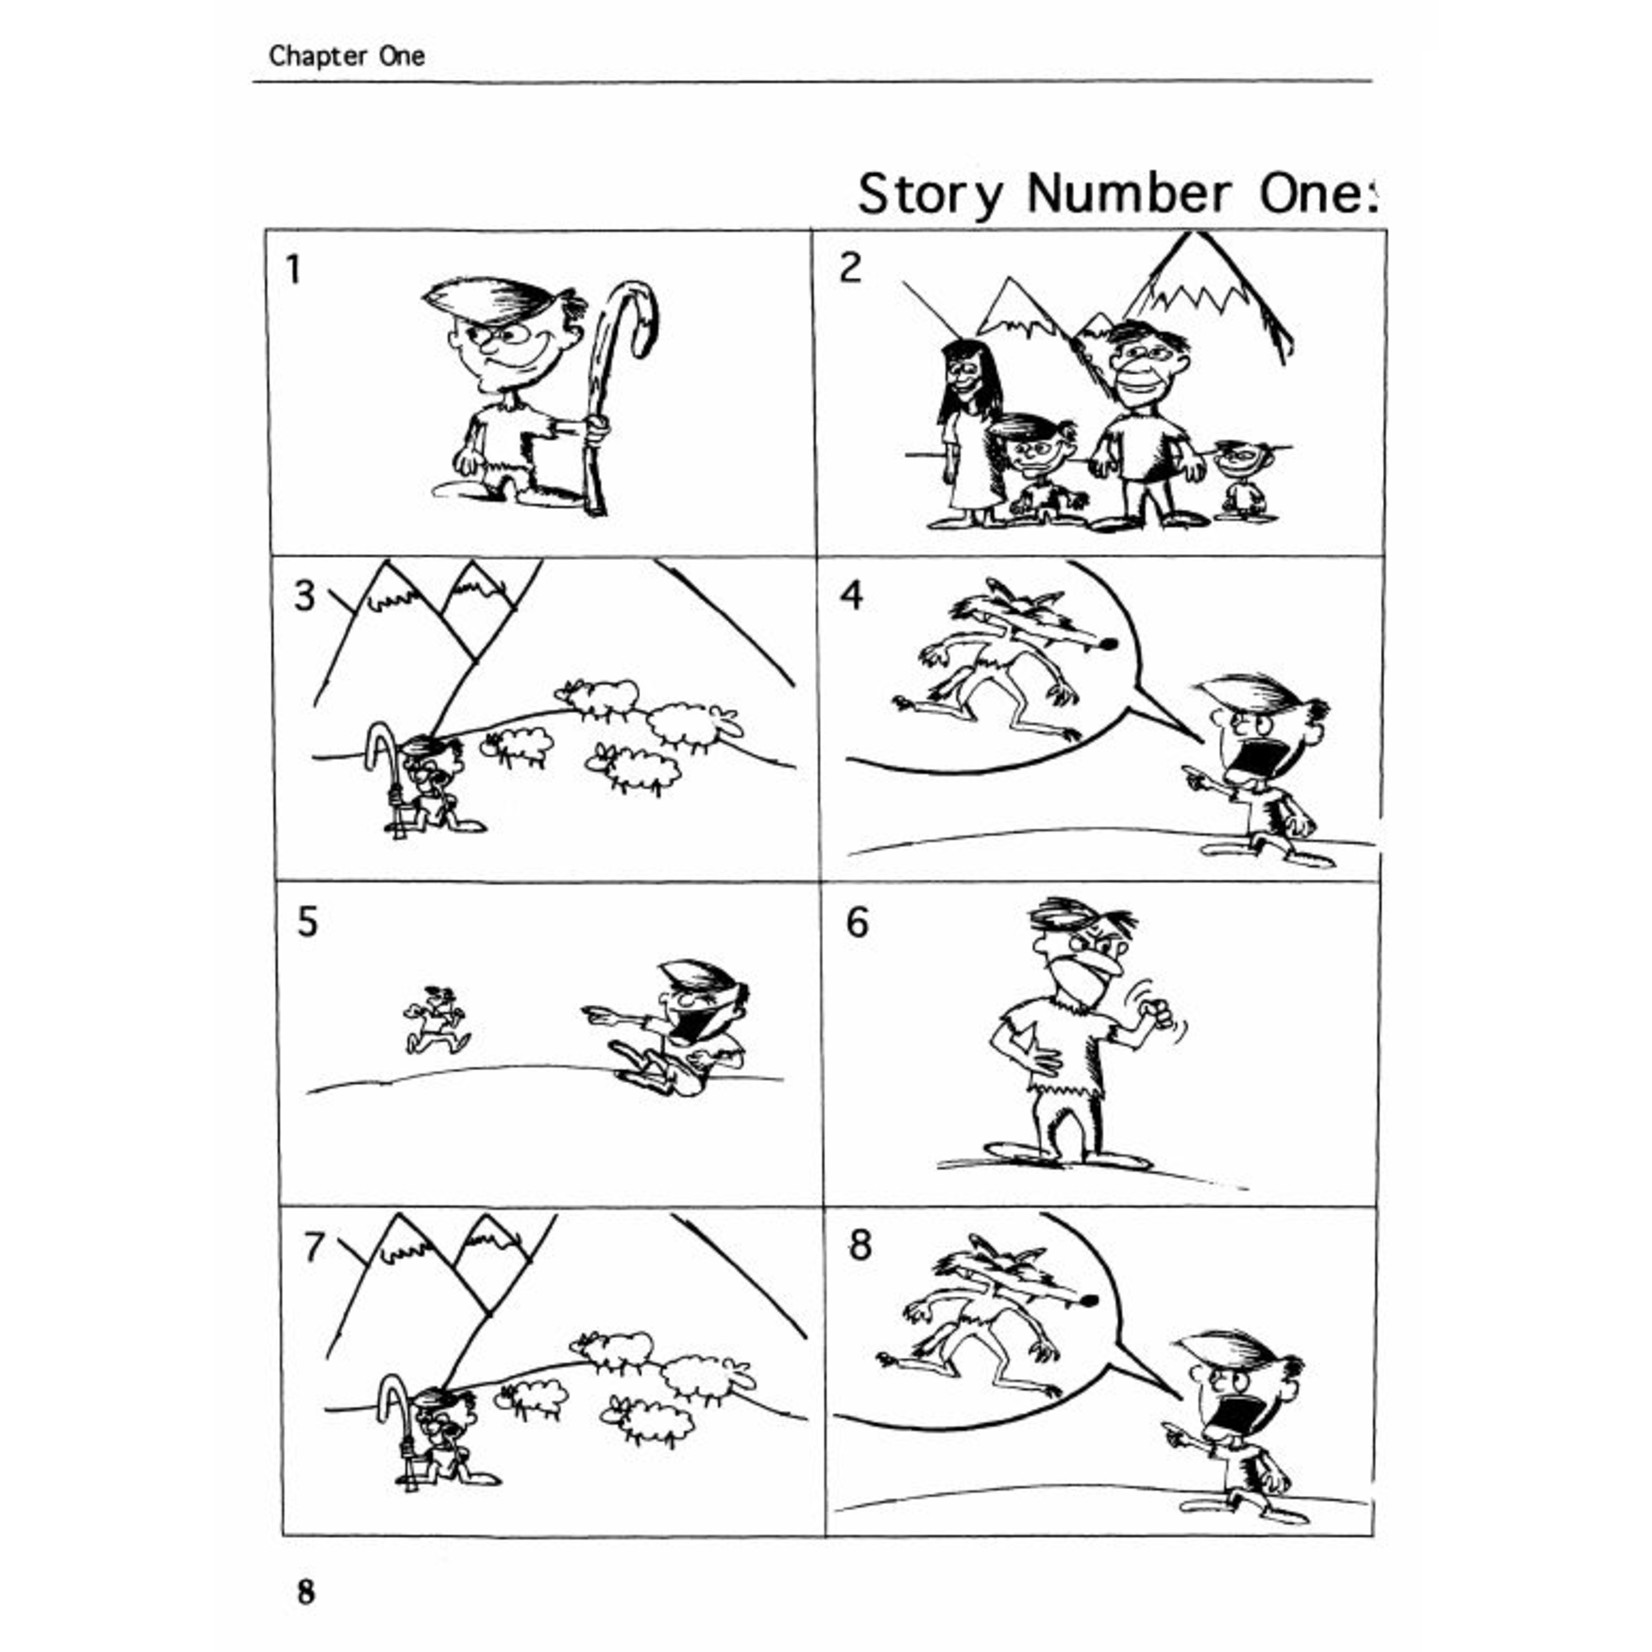 Fluency Matters Tell me more! Student Textbook